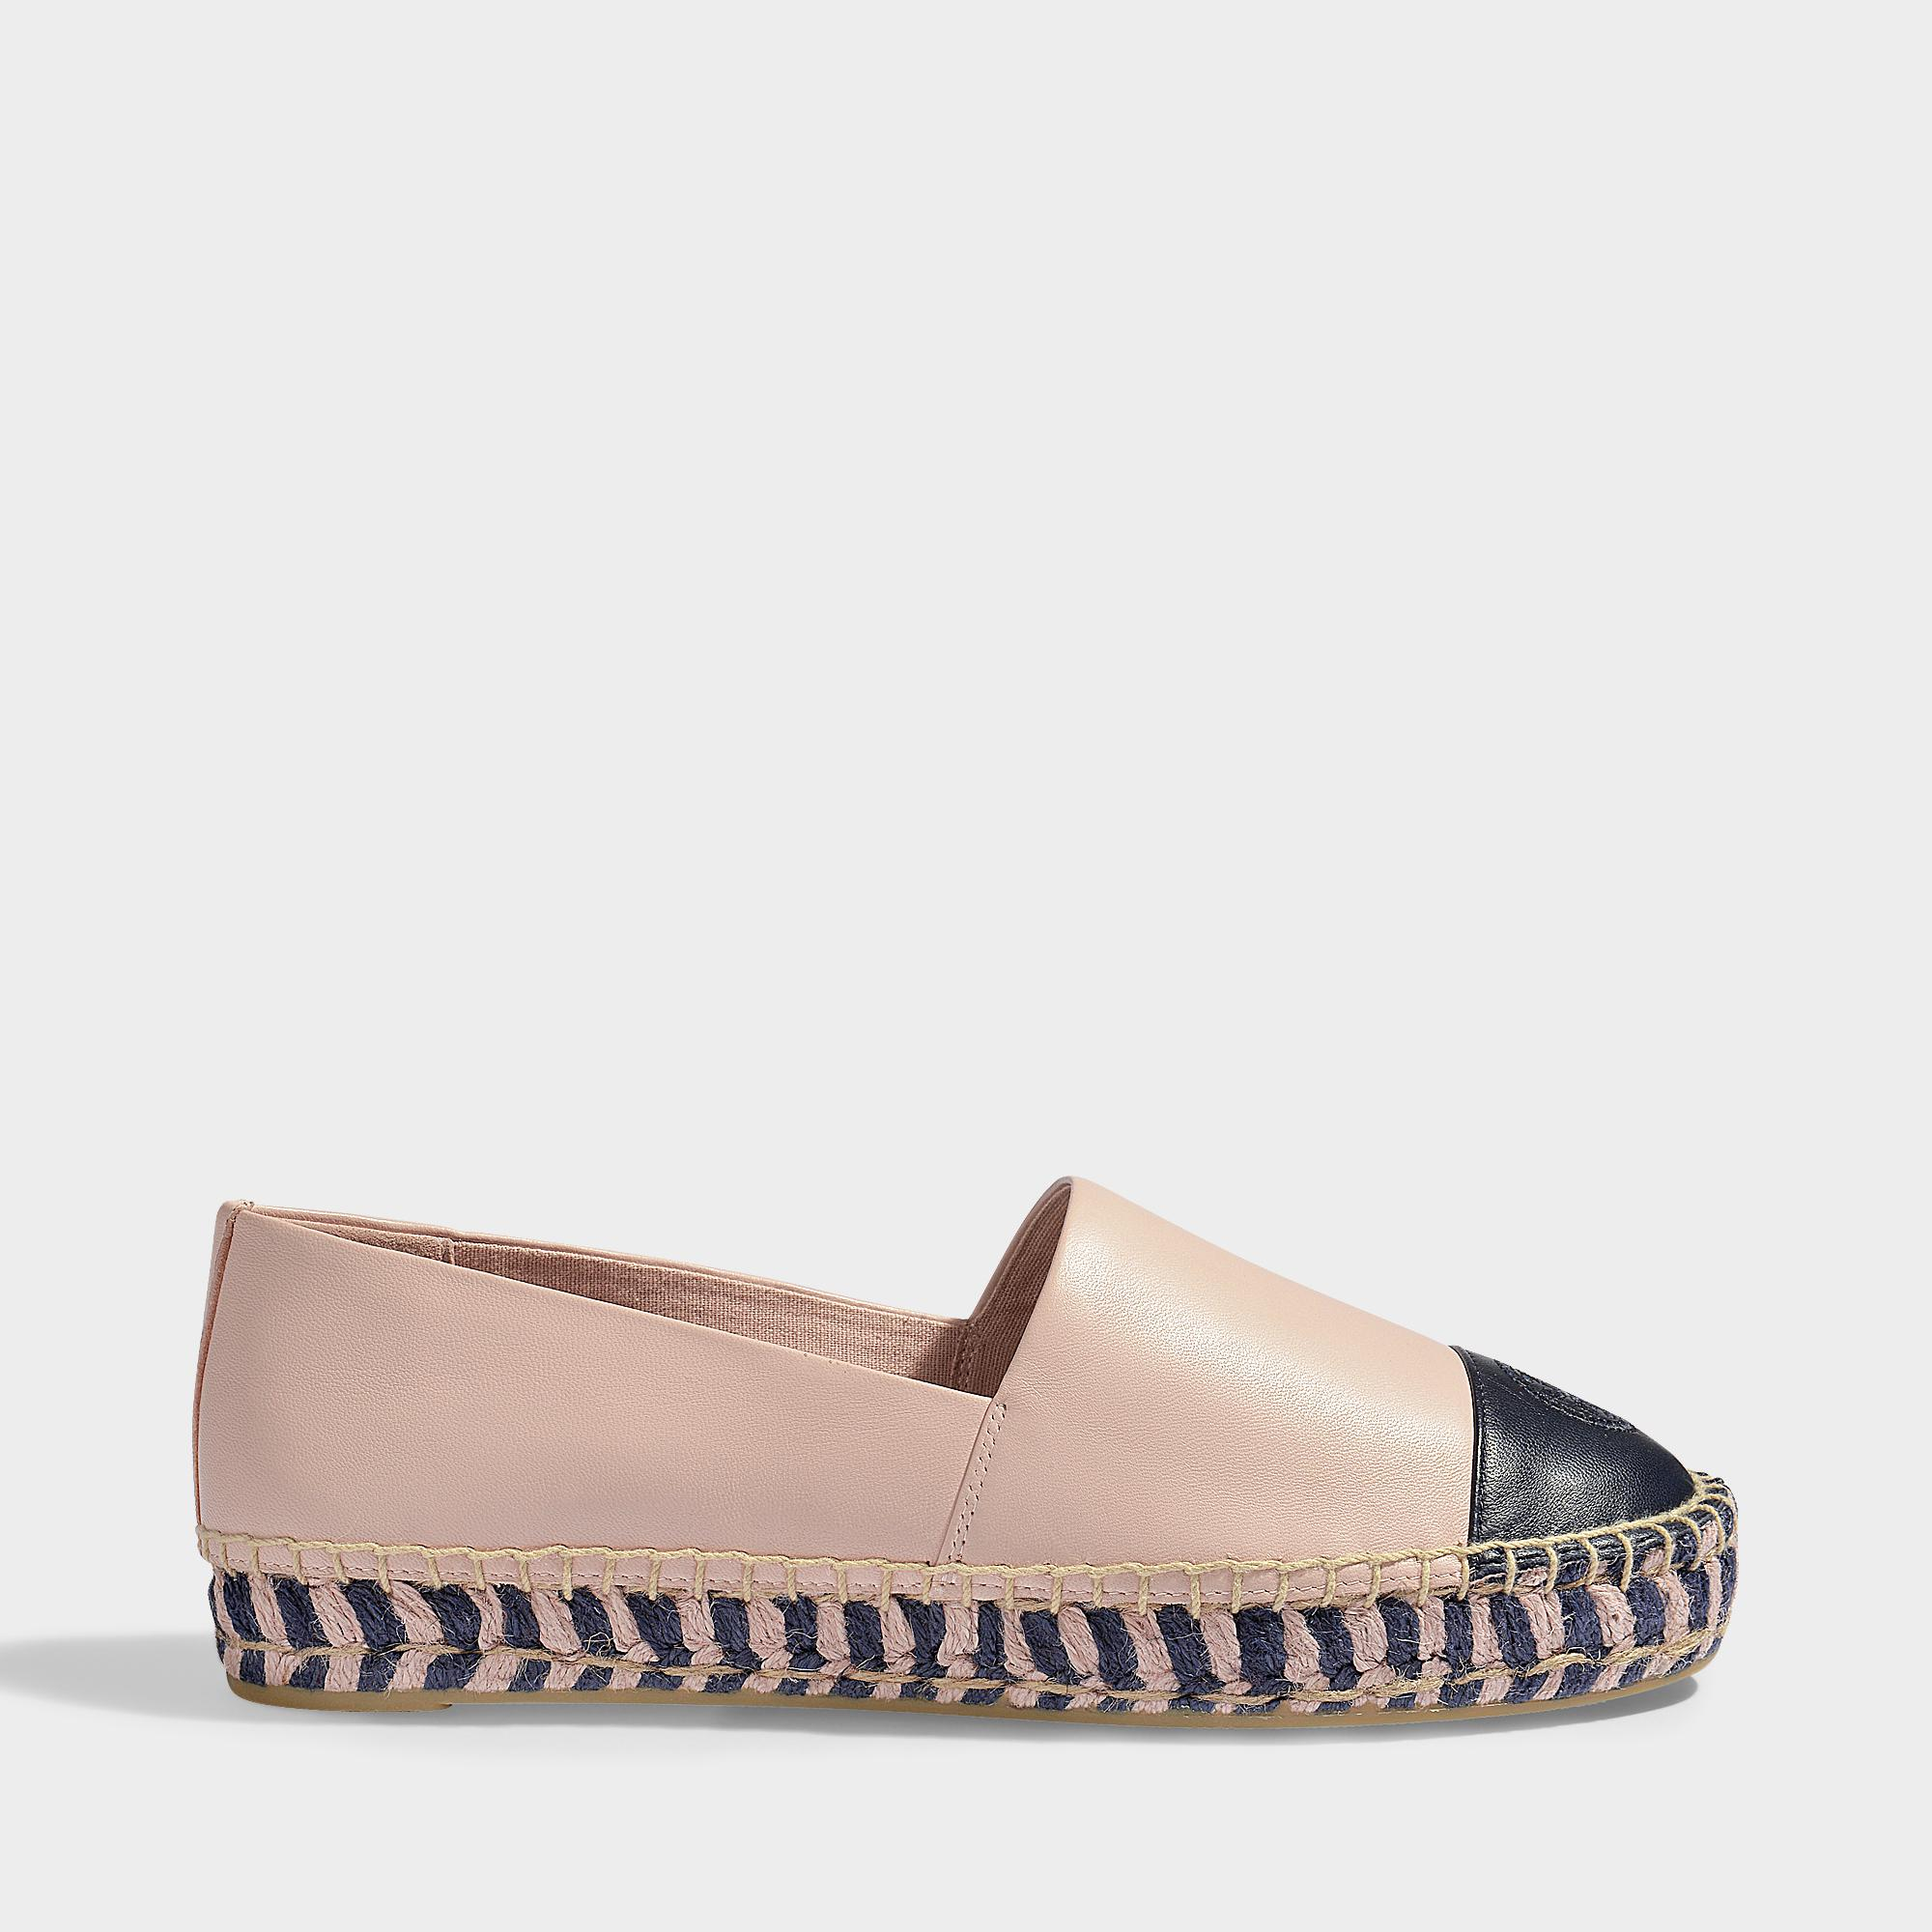 Colour black platform espadrilles Tory Burch 4KPqgo